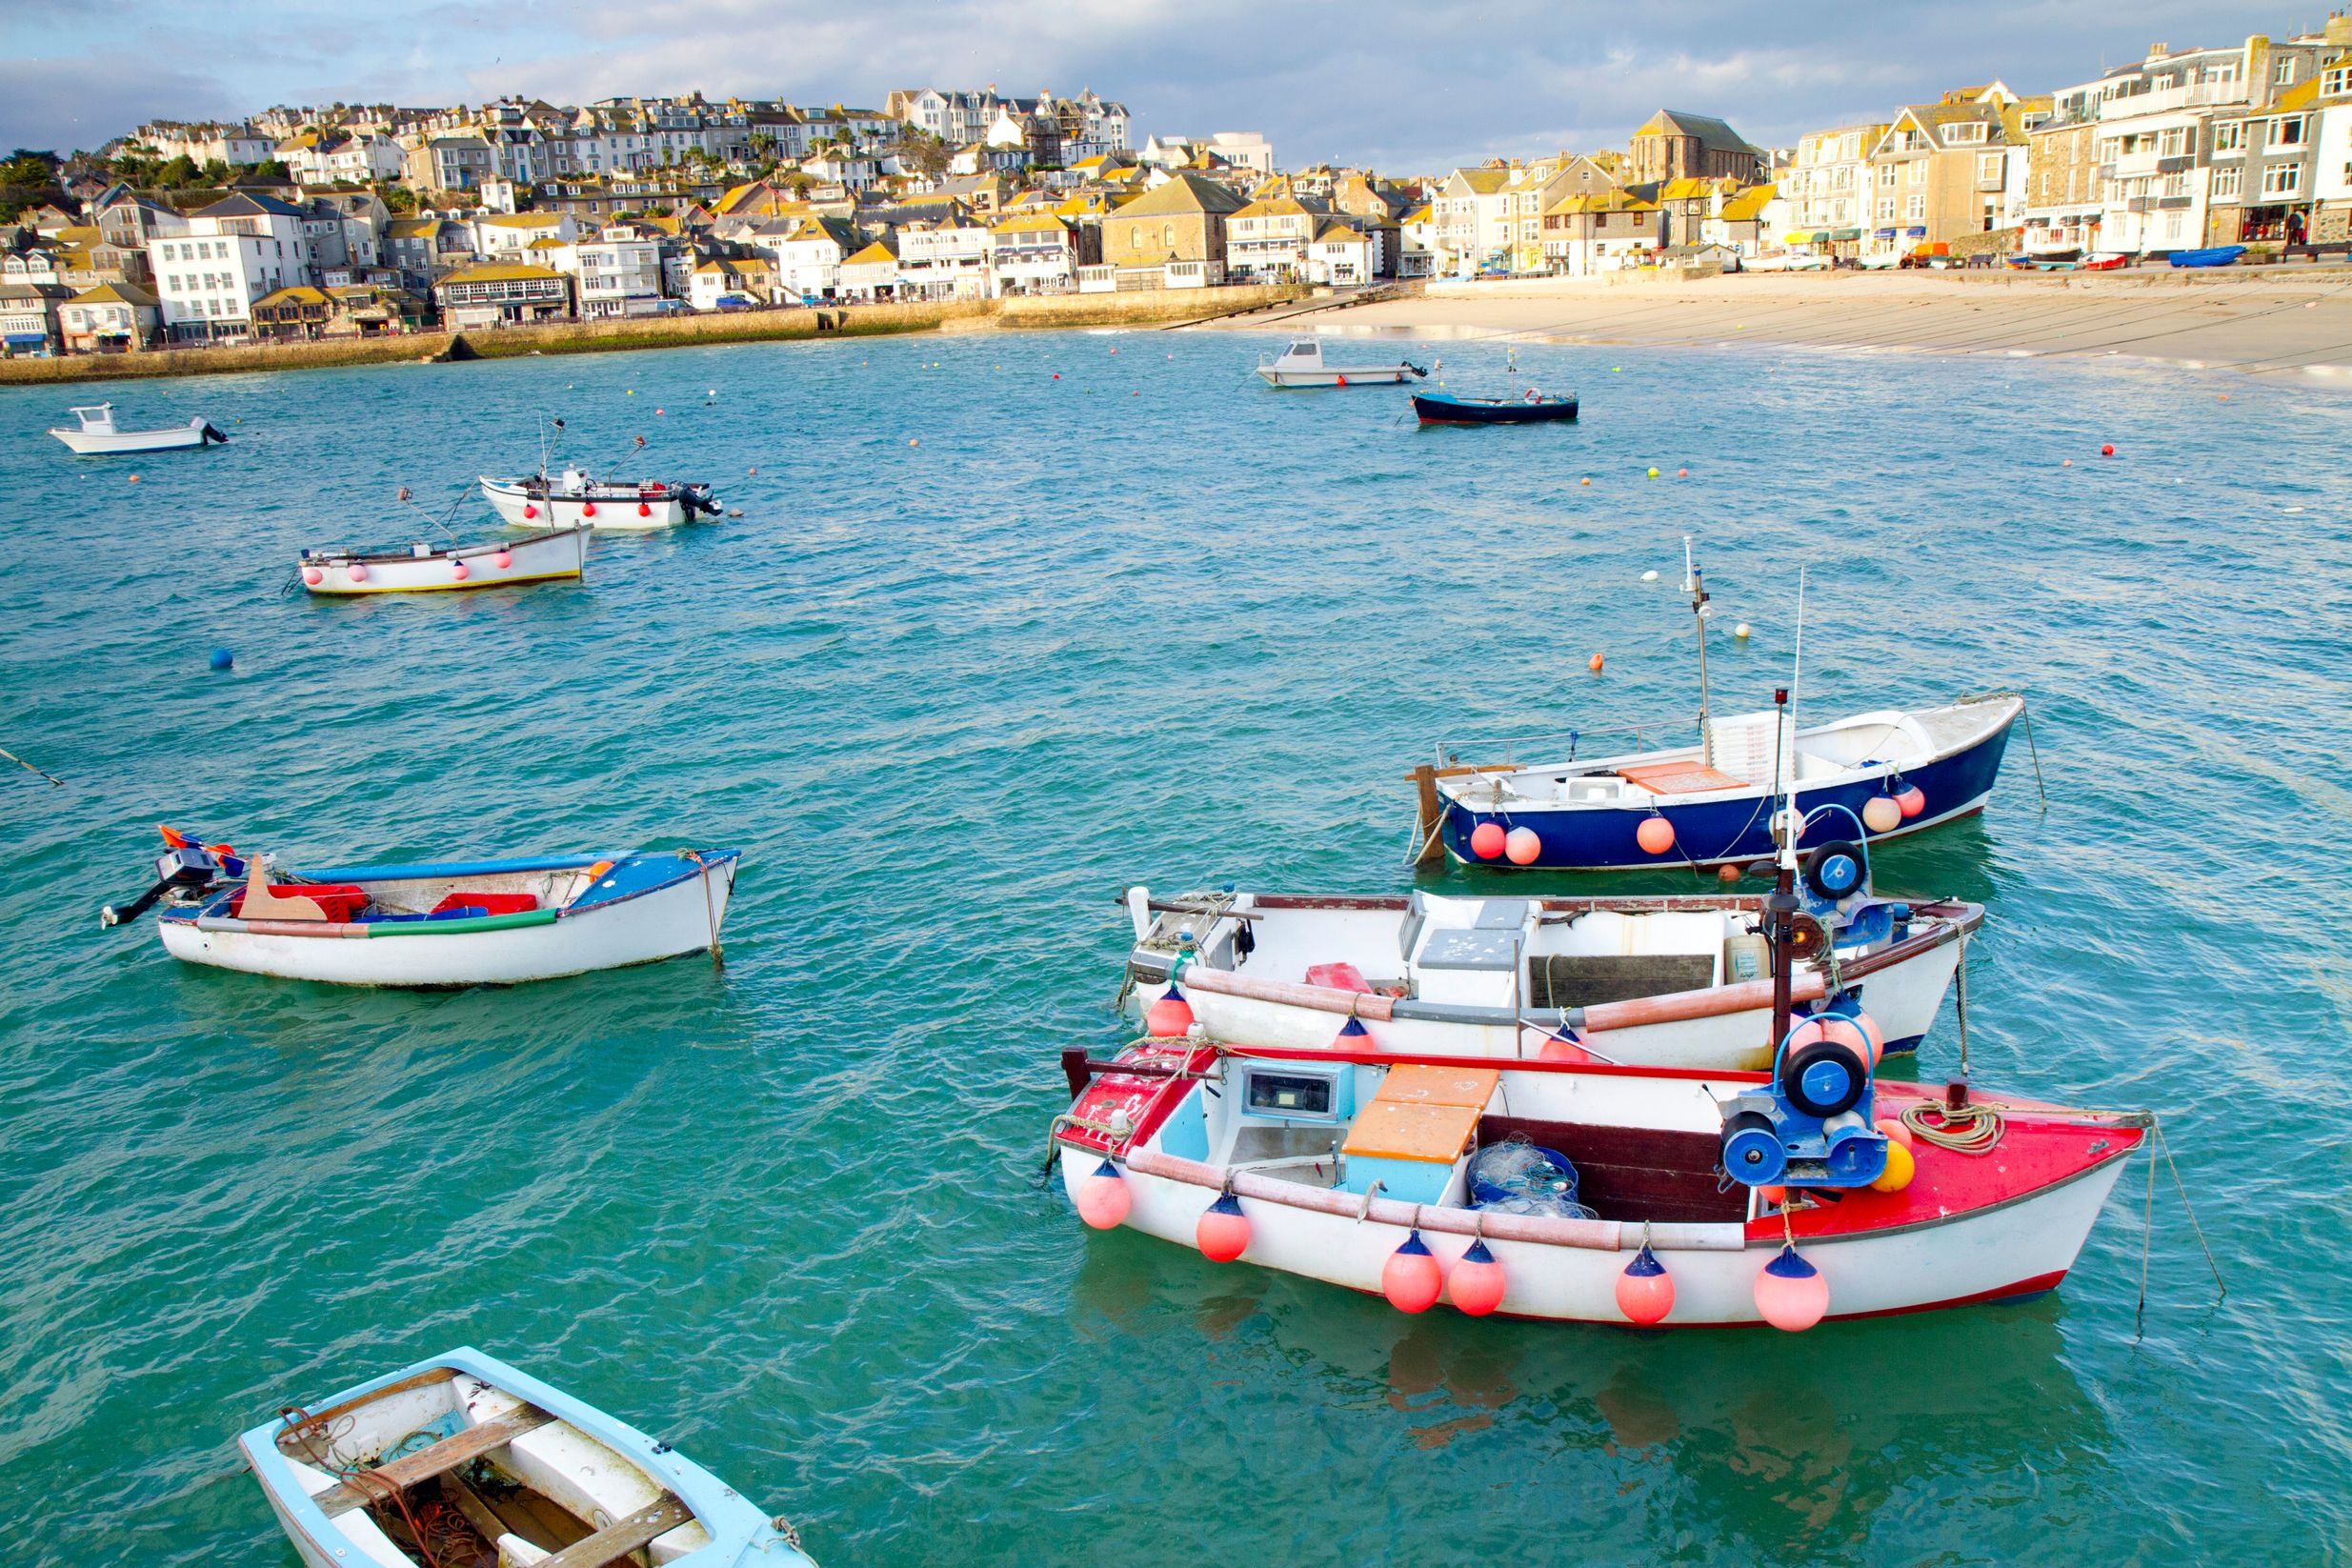 Colourful boats in St. Ives Bay, Cornwall